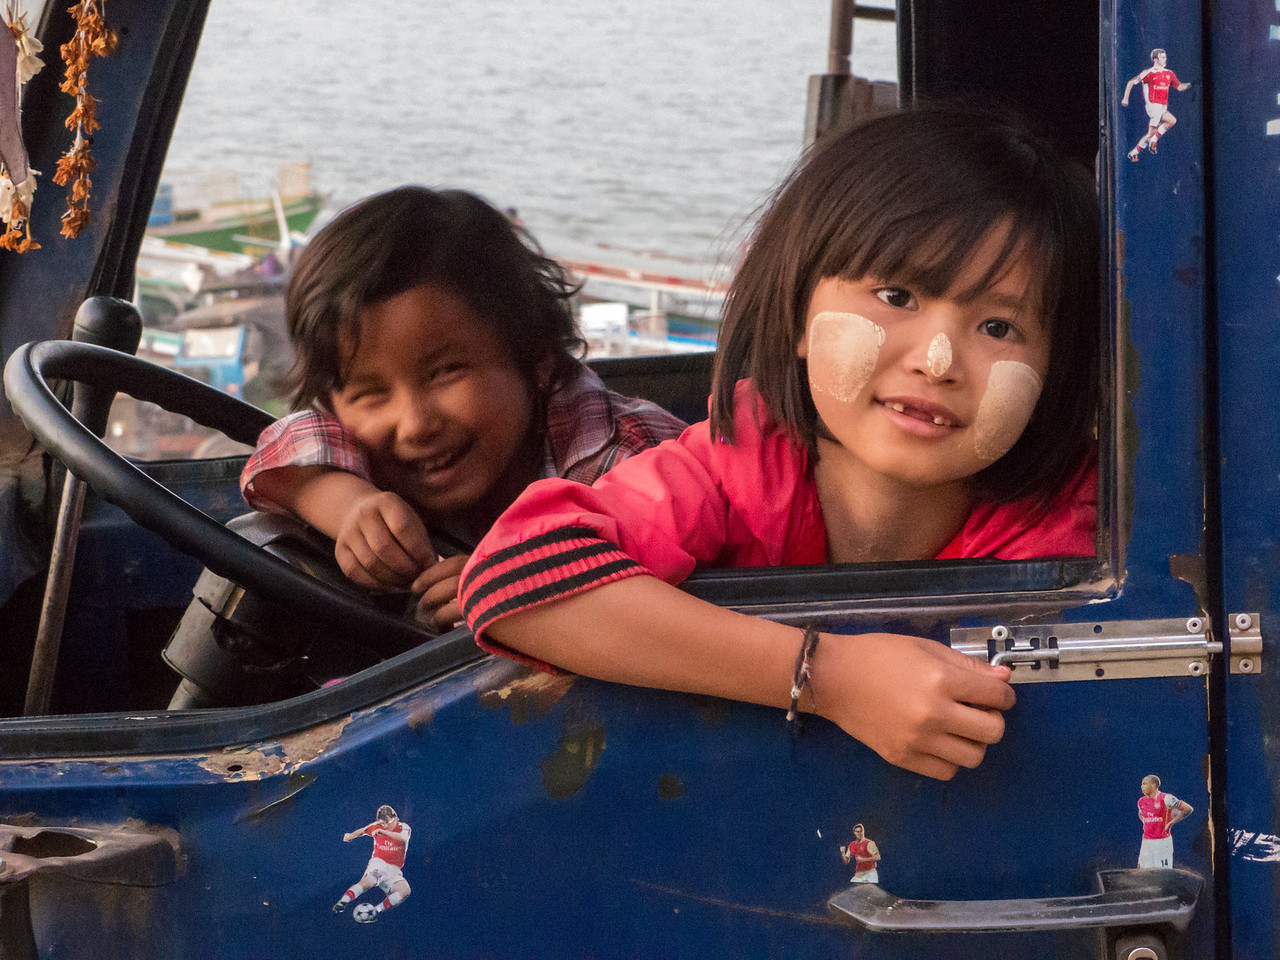 Kids Playing in a Delivery Truck near the Irrawaddy River, Myanmar